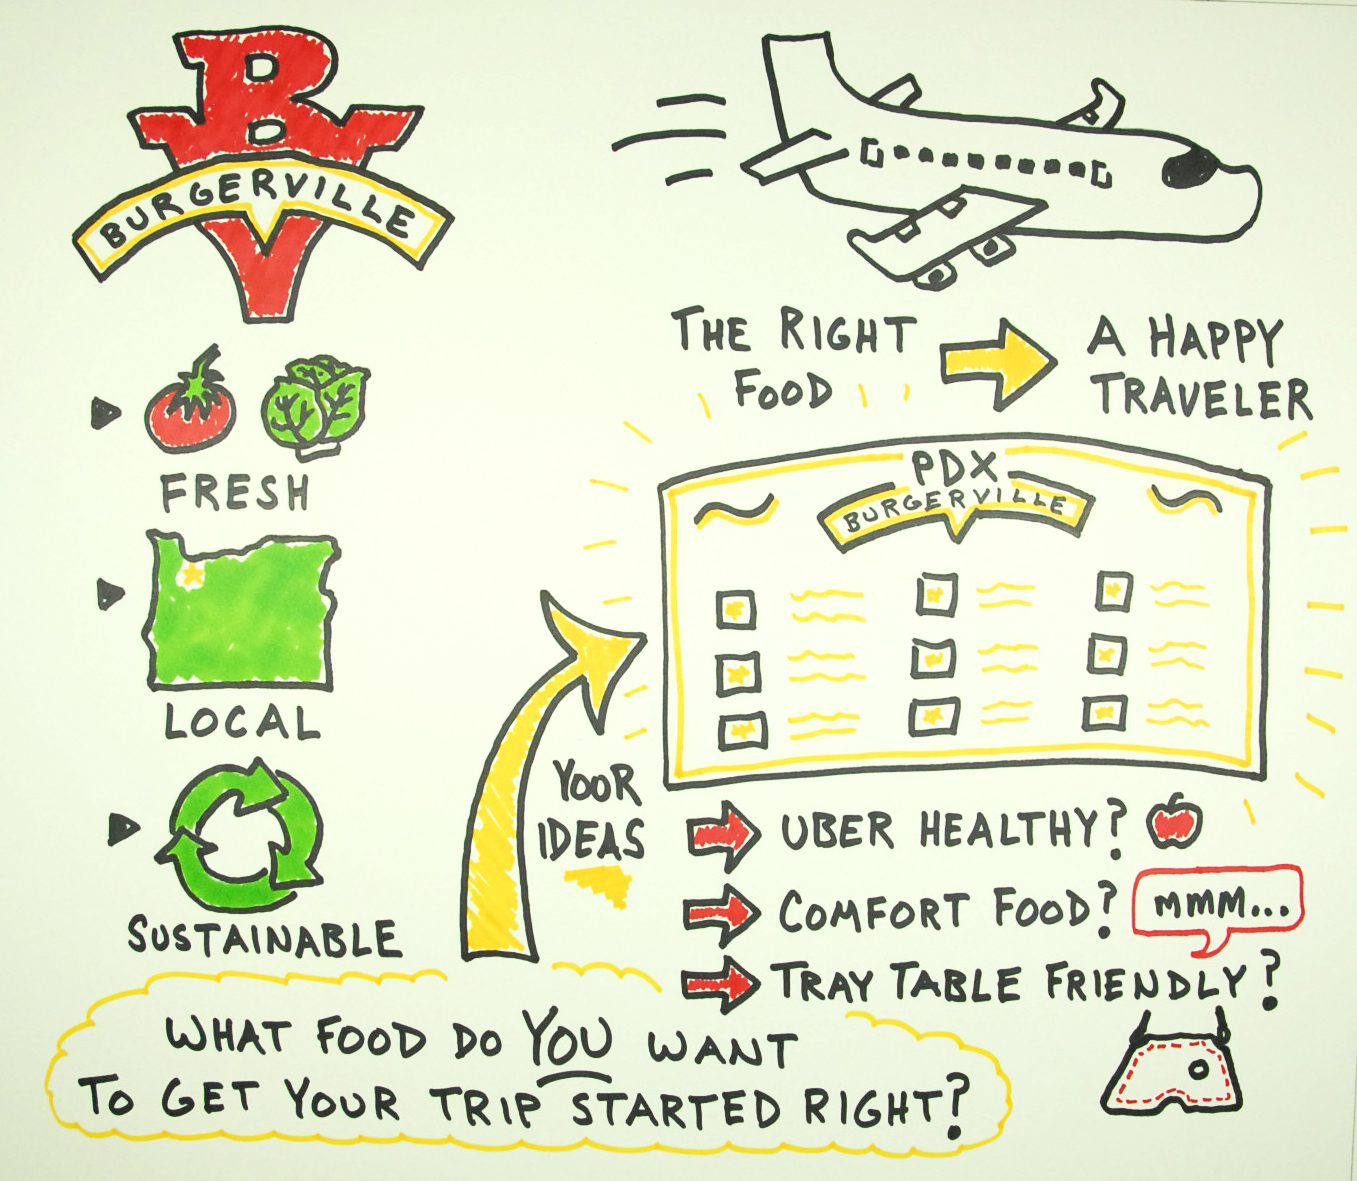 Burgerville PDX Airport Food Options - time-lapse illustration - doug neill